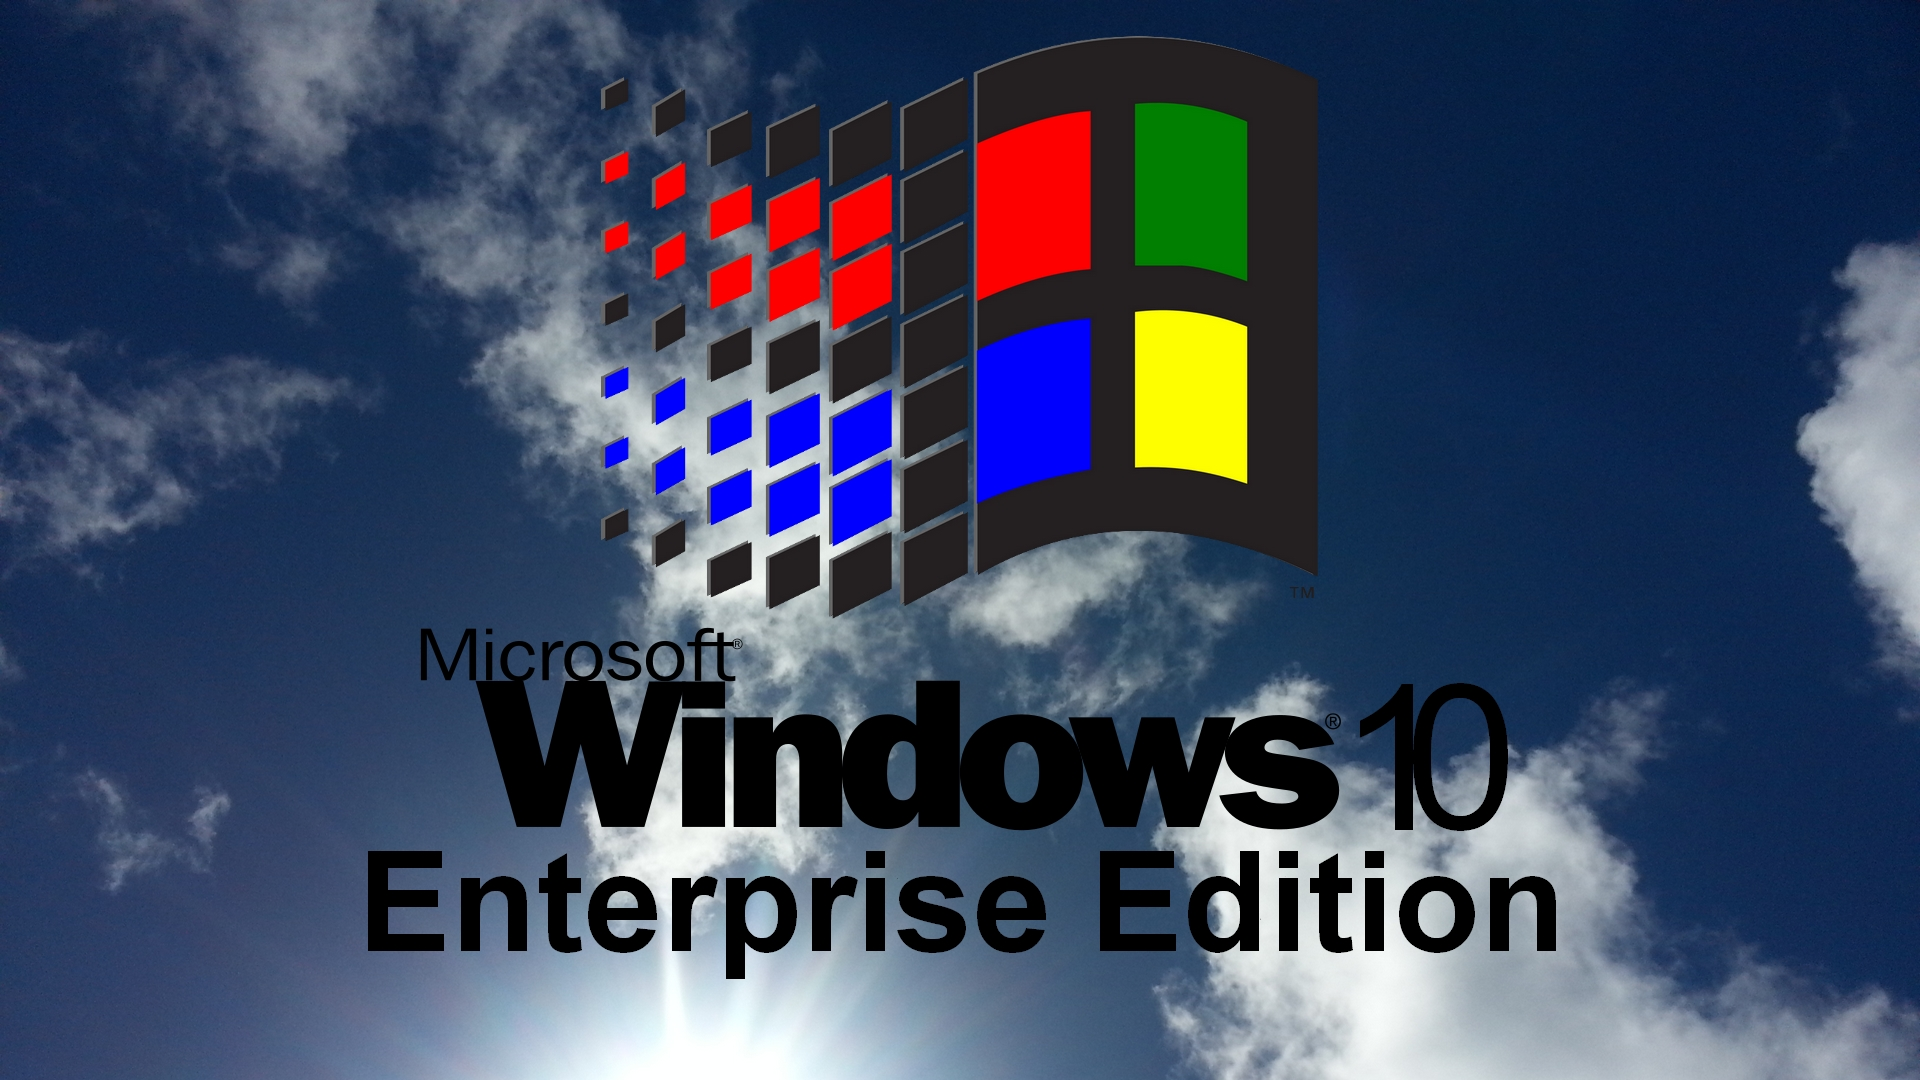 Windows 10 Enterprise Edition Clouds By Eric02370 On Deviantart